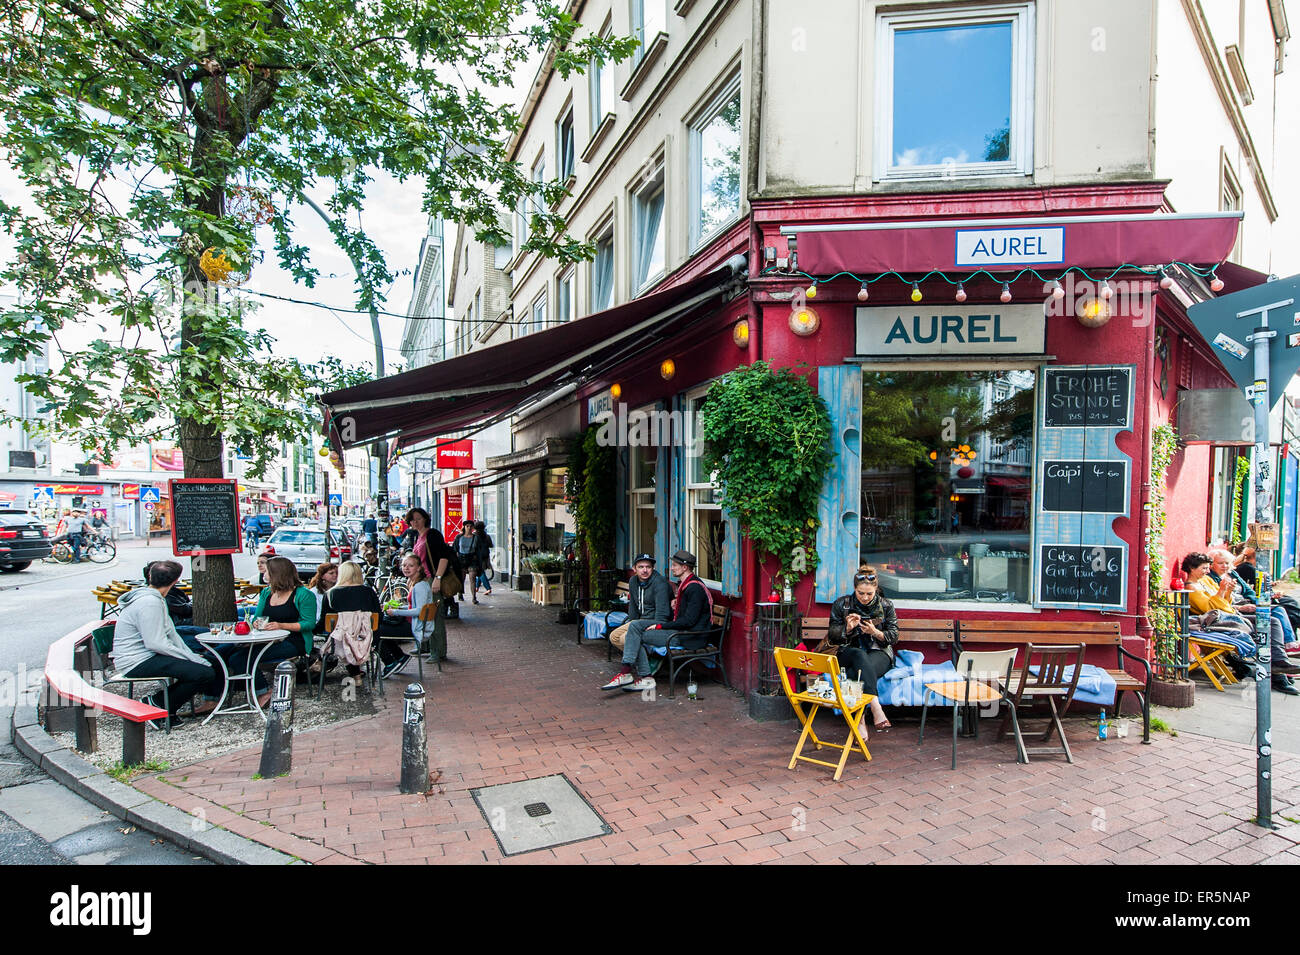 People In Front Of Bar Aurel Altona Hamburg Germany